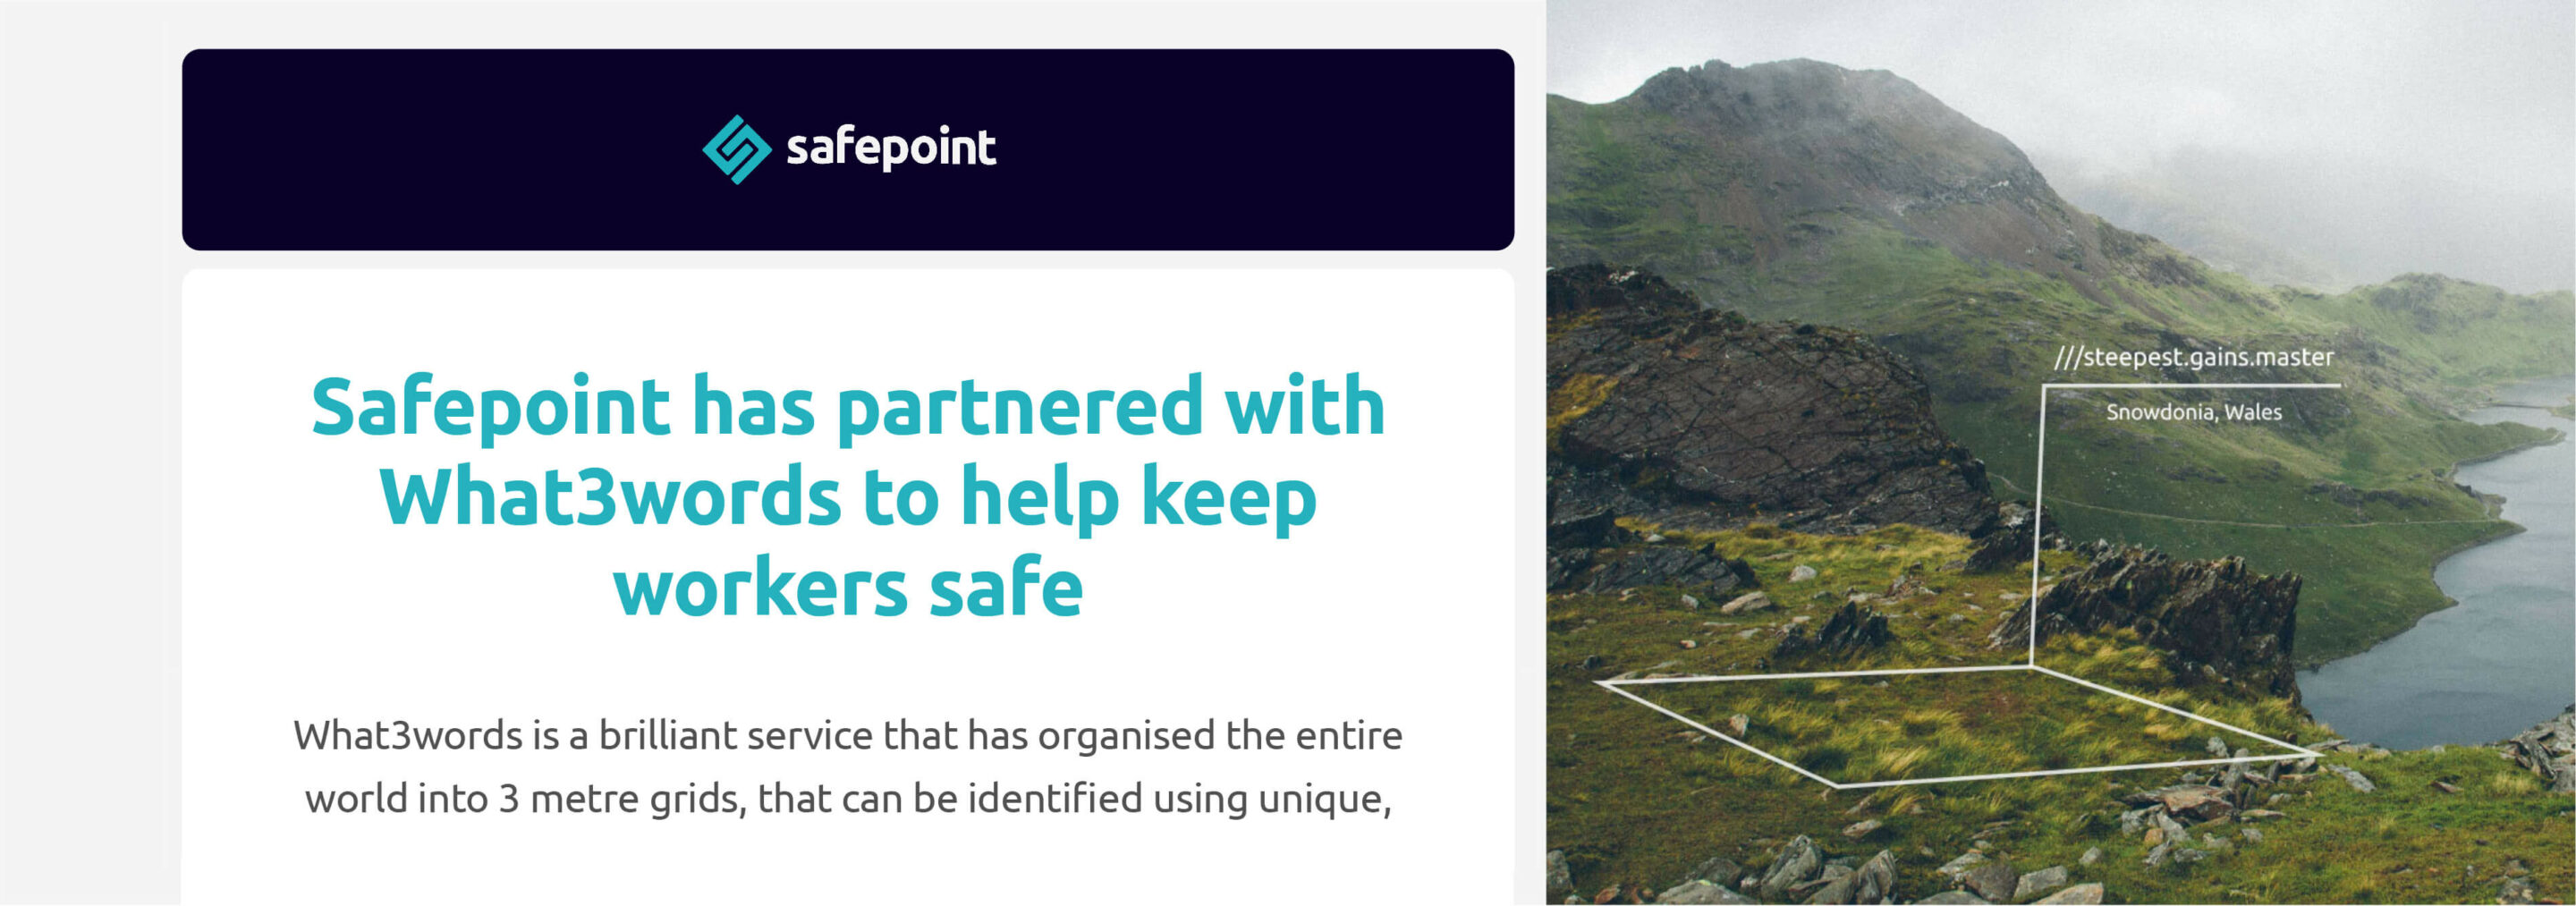 Safepoint Best Practice example for carousel